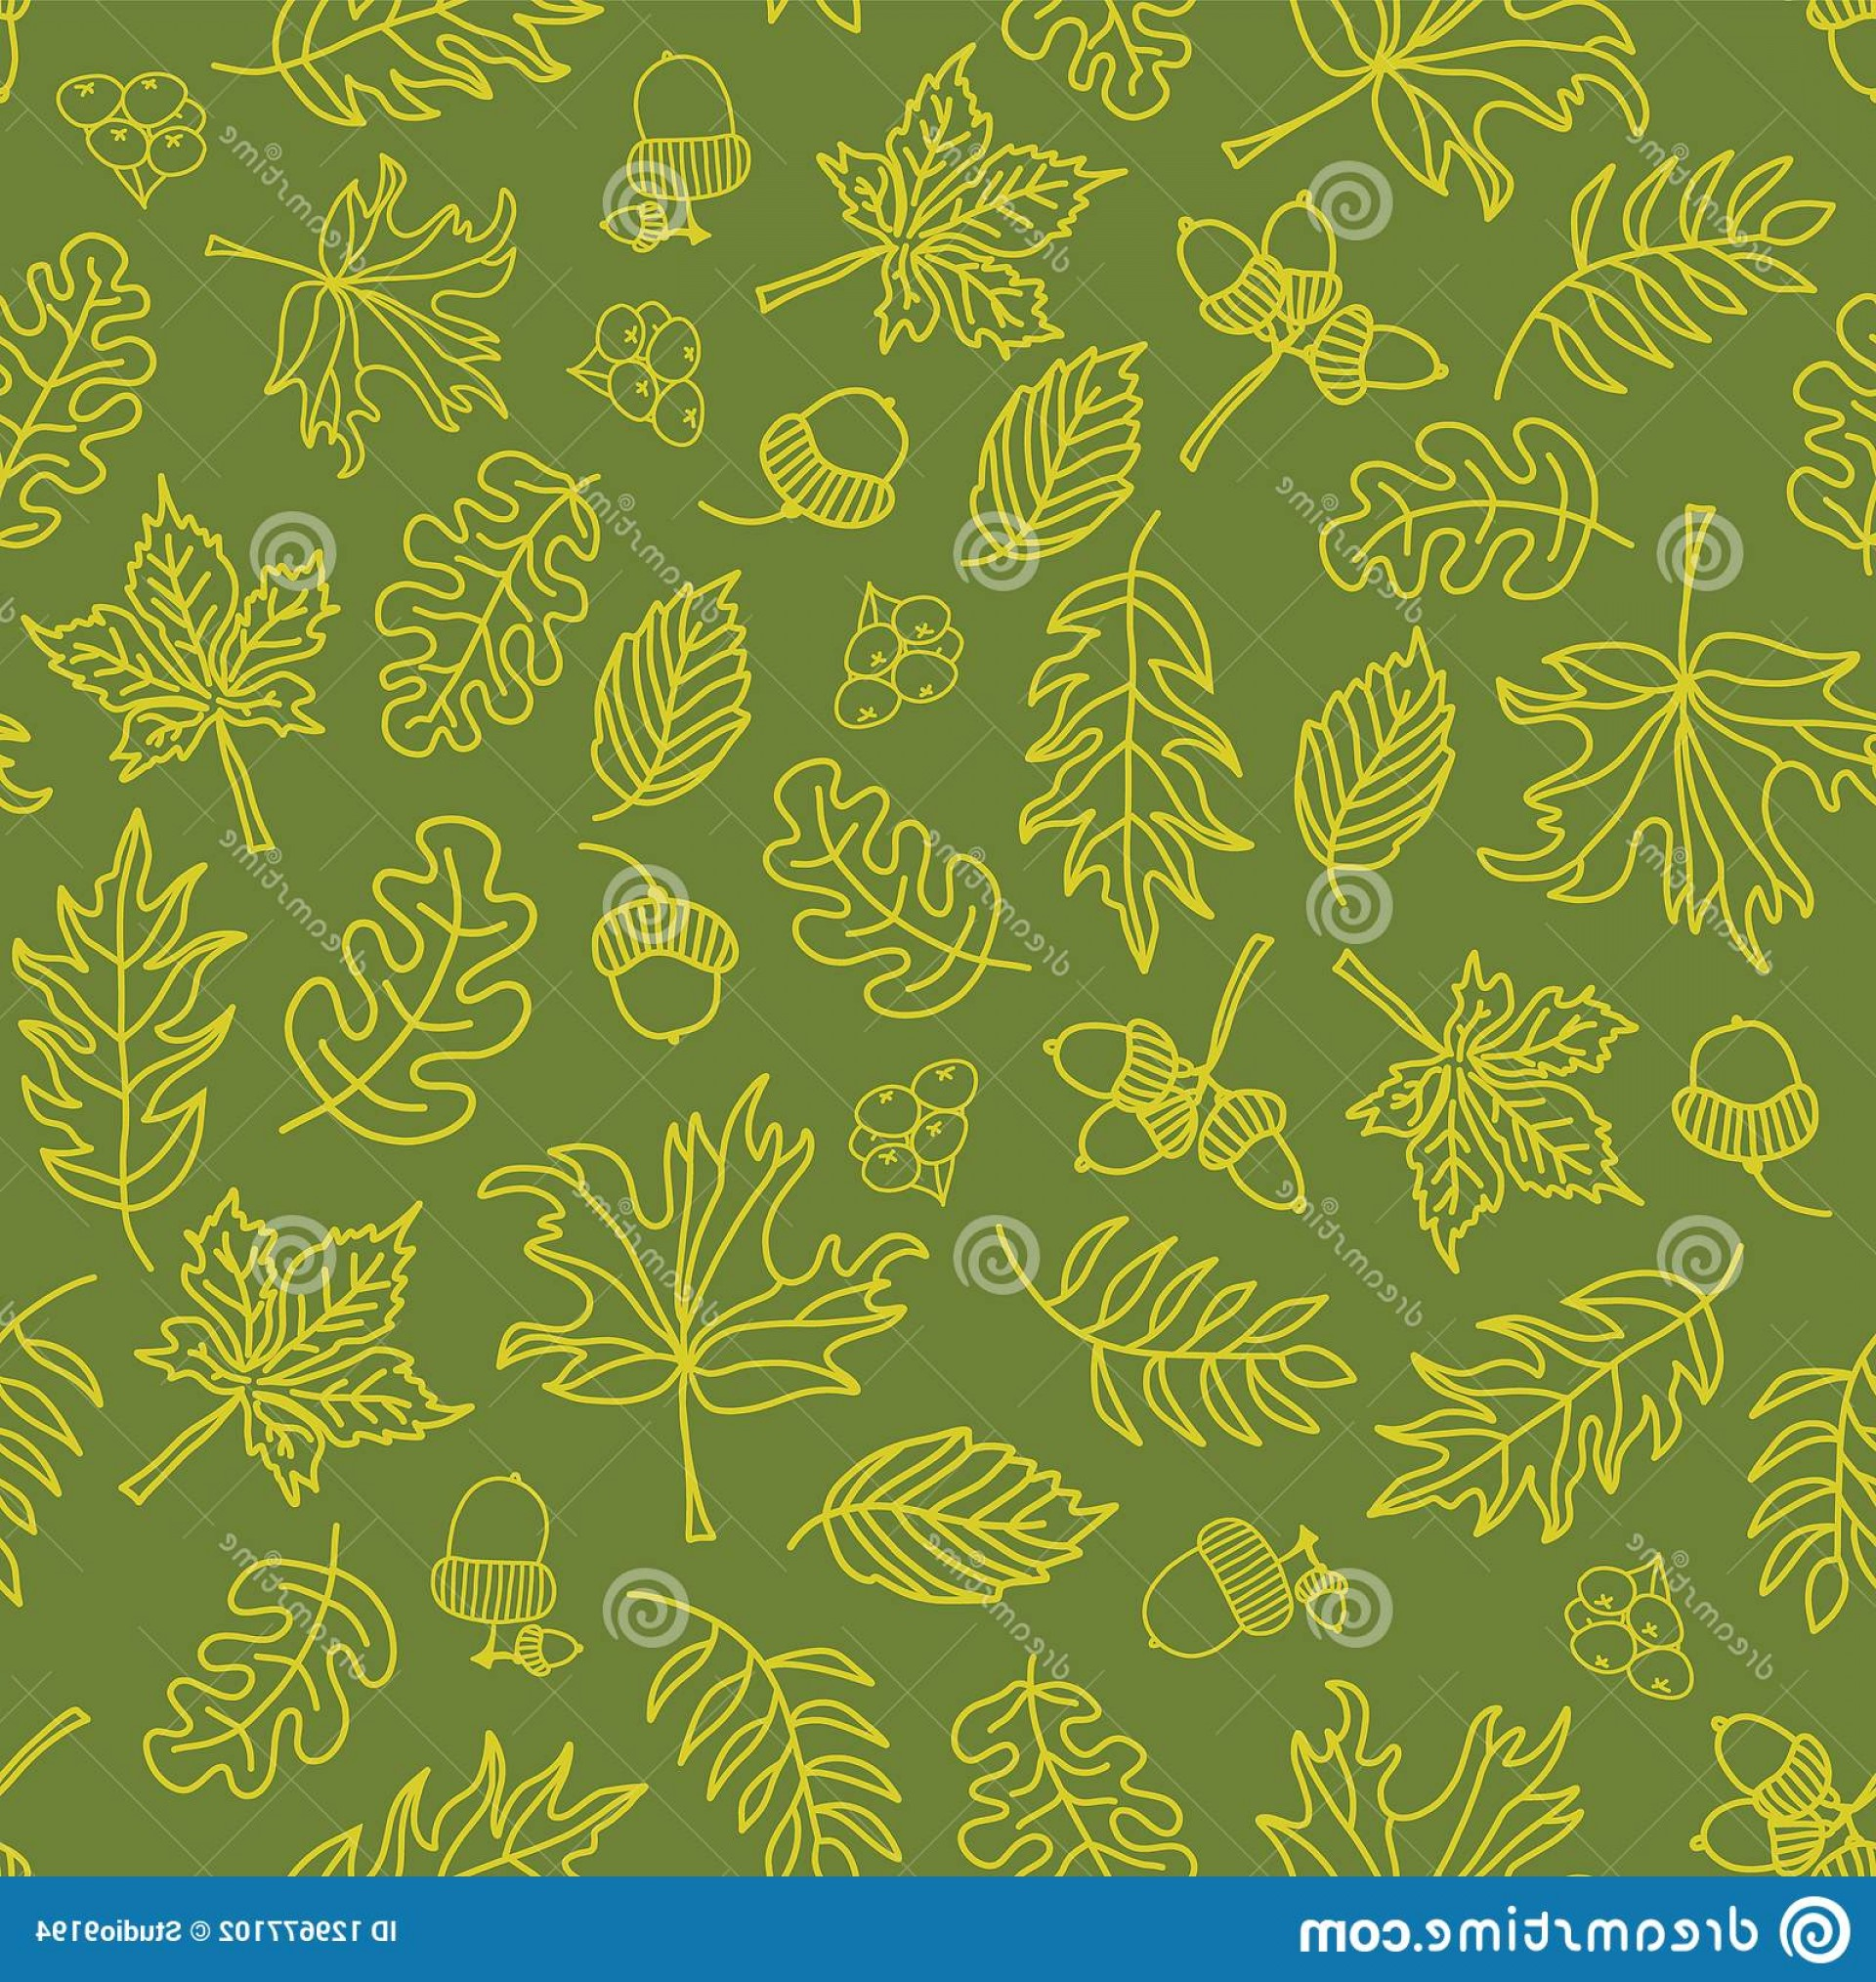 Autumn Seamless Vector: Autumn Doodle Leaves Seamless Vector Background Lime Green Acorns Oak Tree Maple Pattern Acorn Leaf Nature Print Fall Image